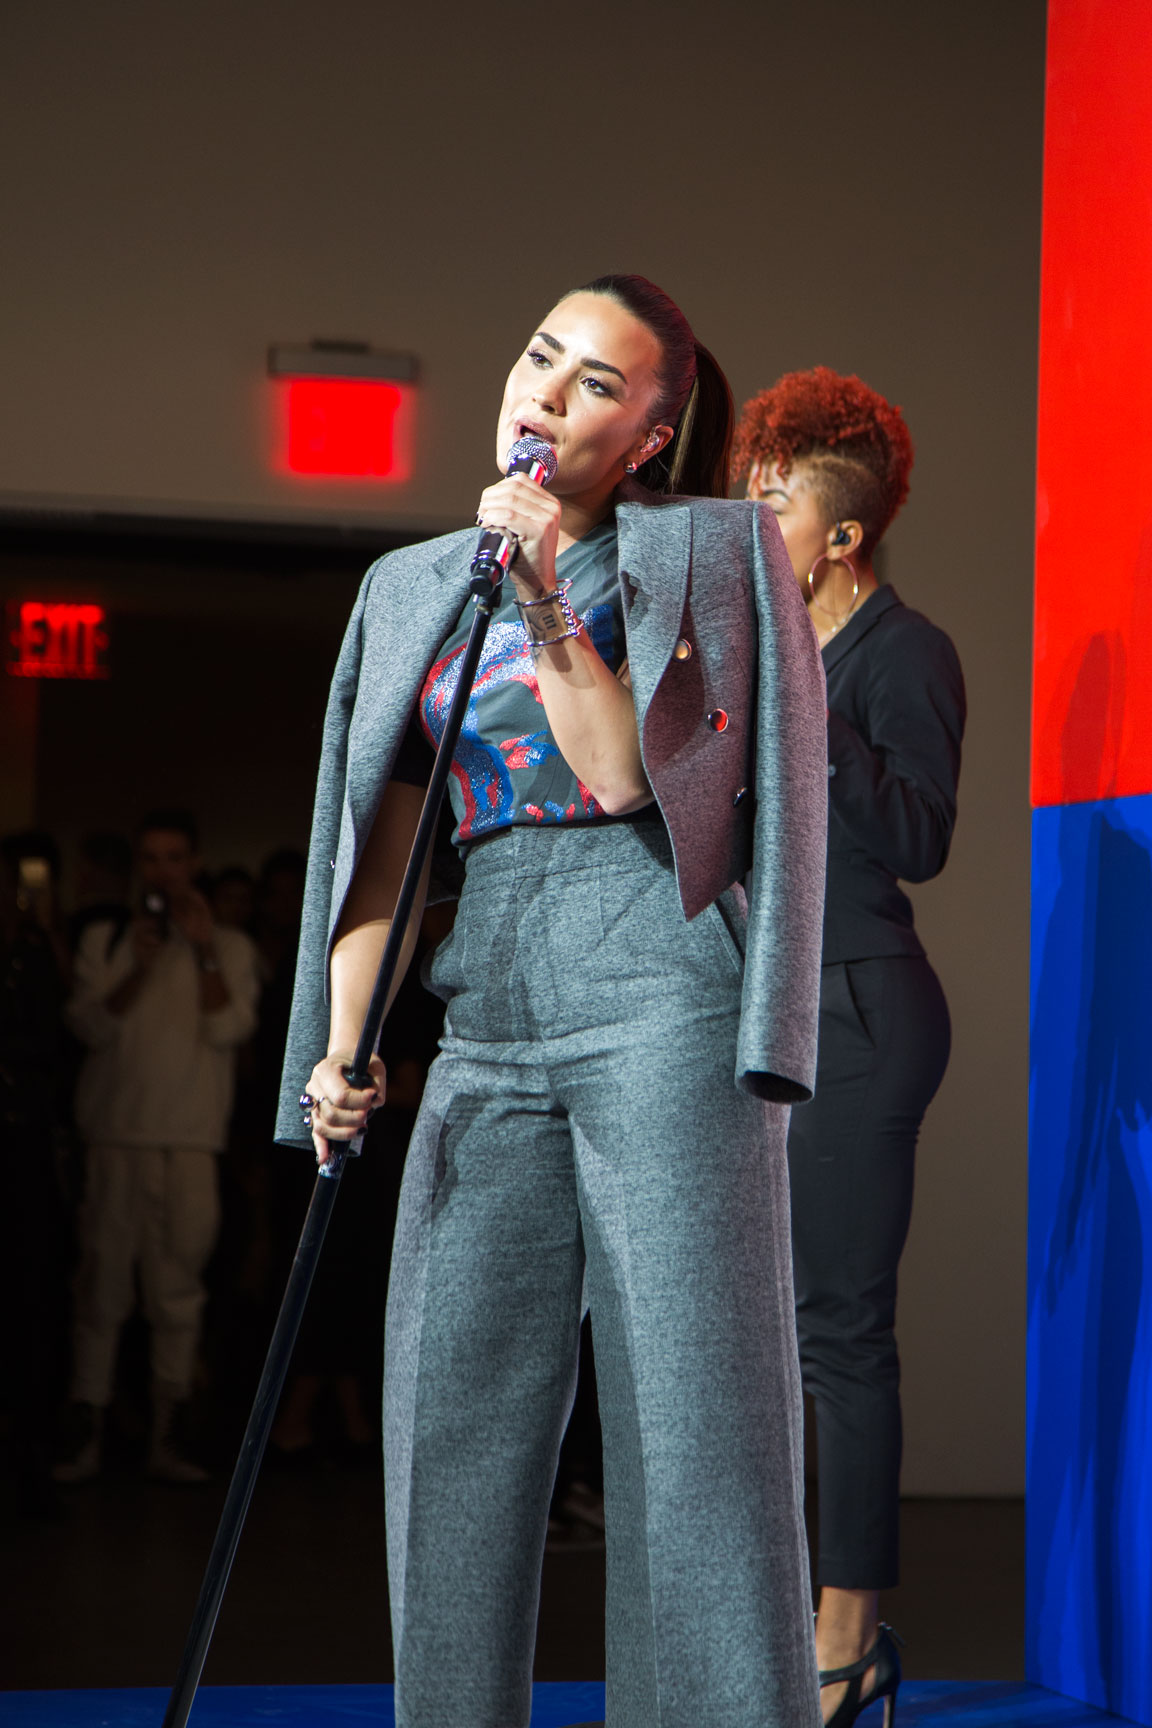 Demi Lovato singing Body Say, wearing Marc Jacobs for Hillary Clinton at New York Fashion Week. Photo by Kristen Blush.